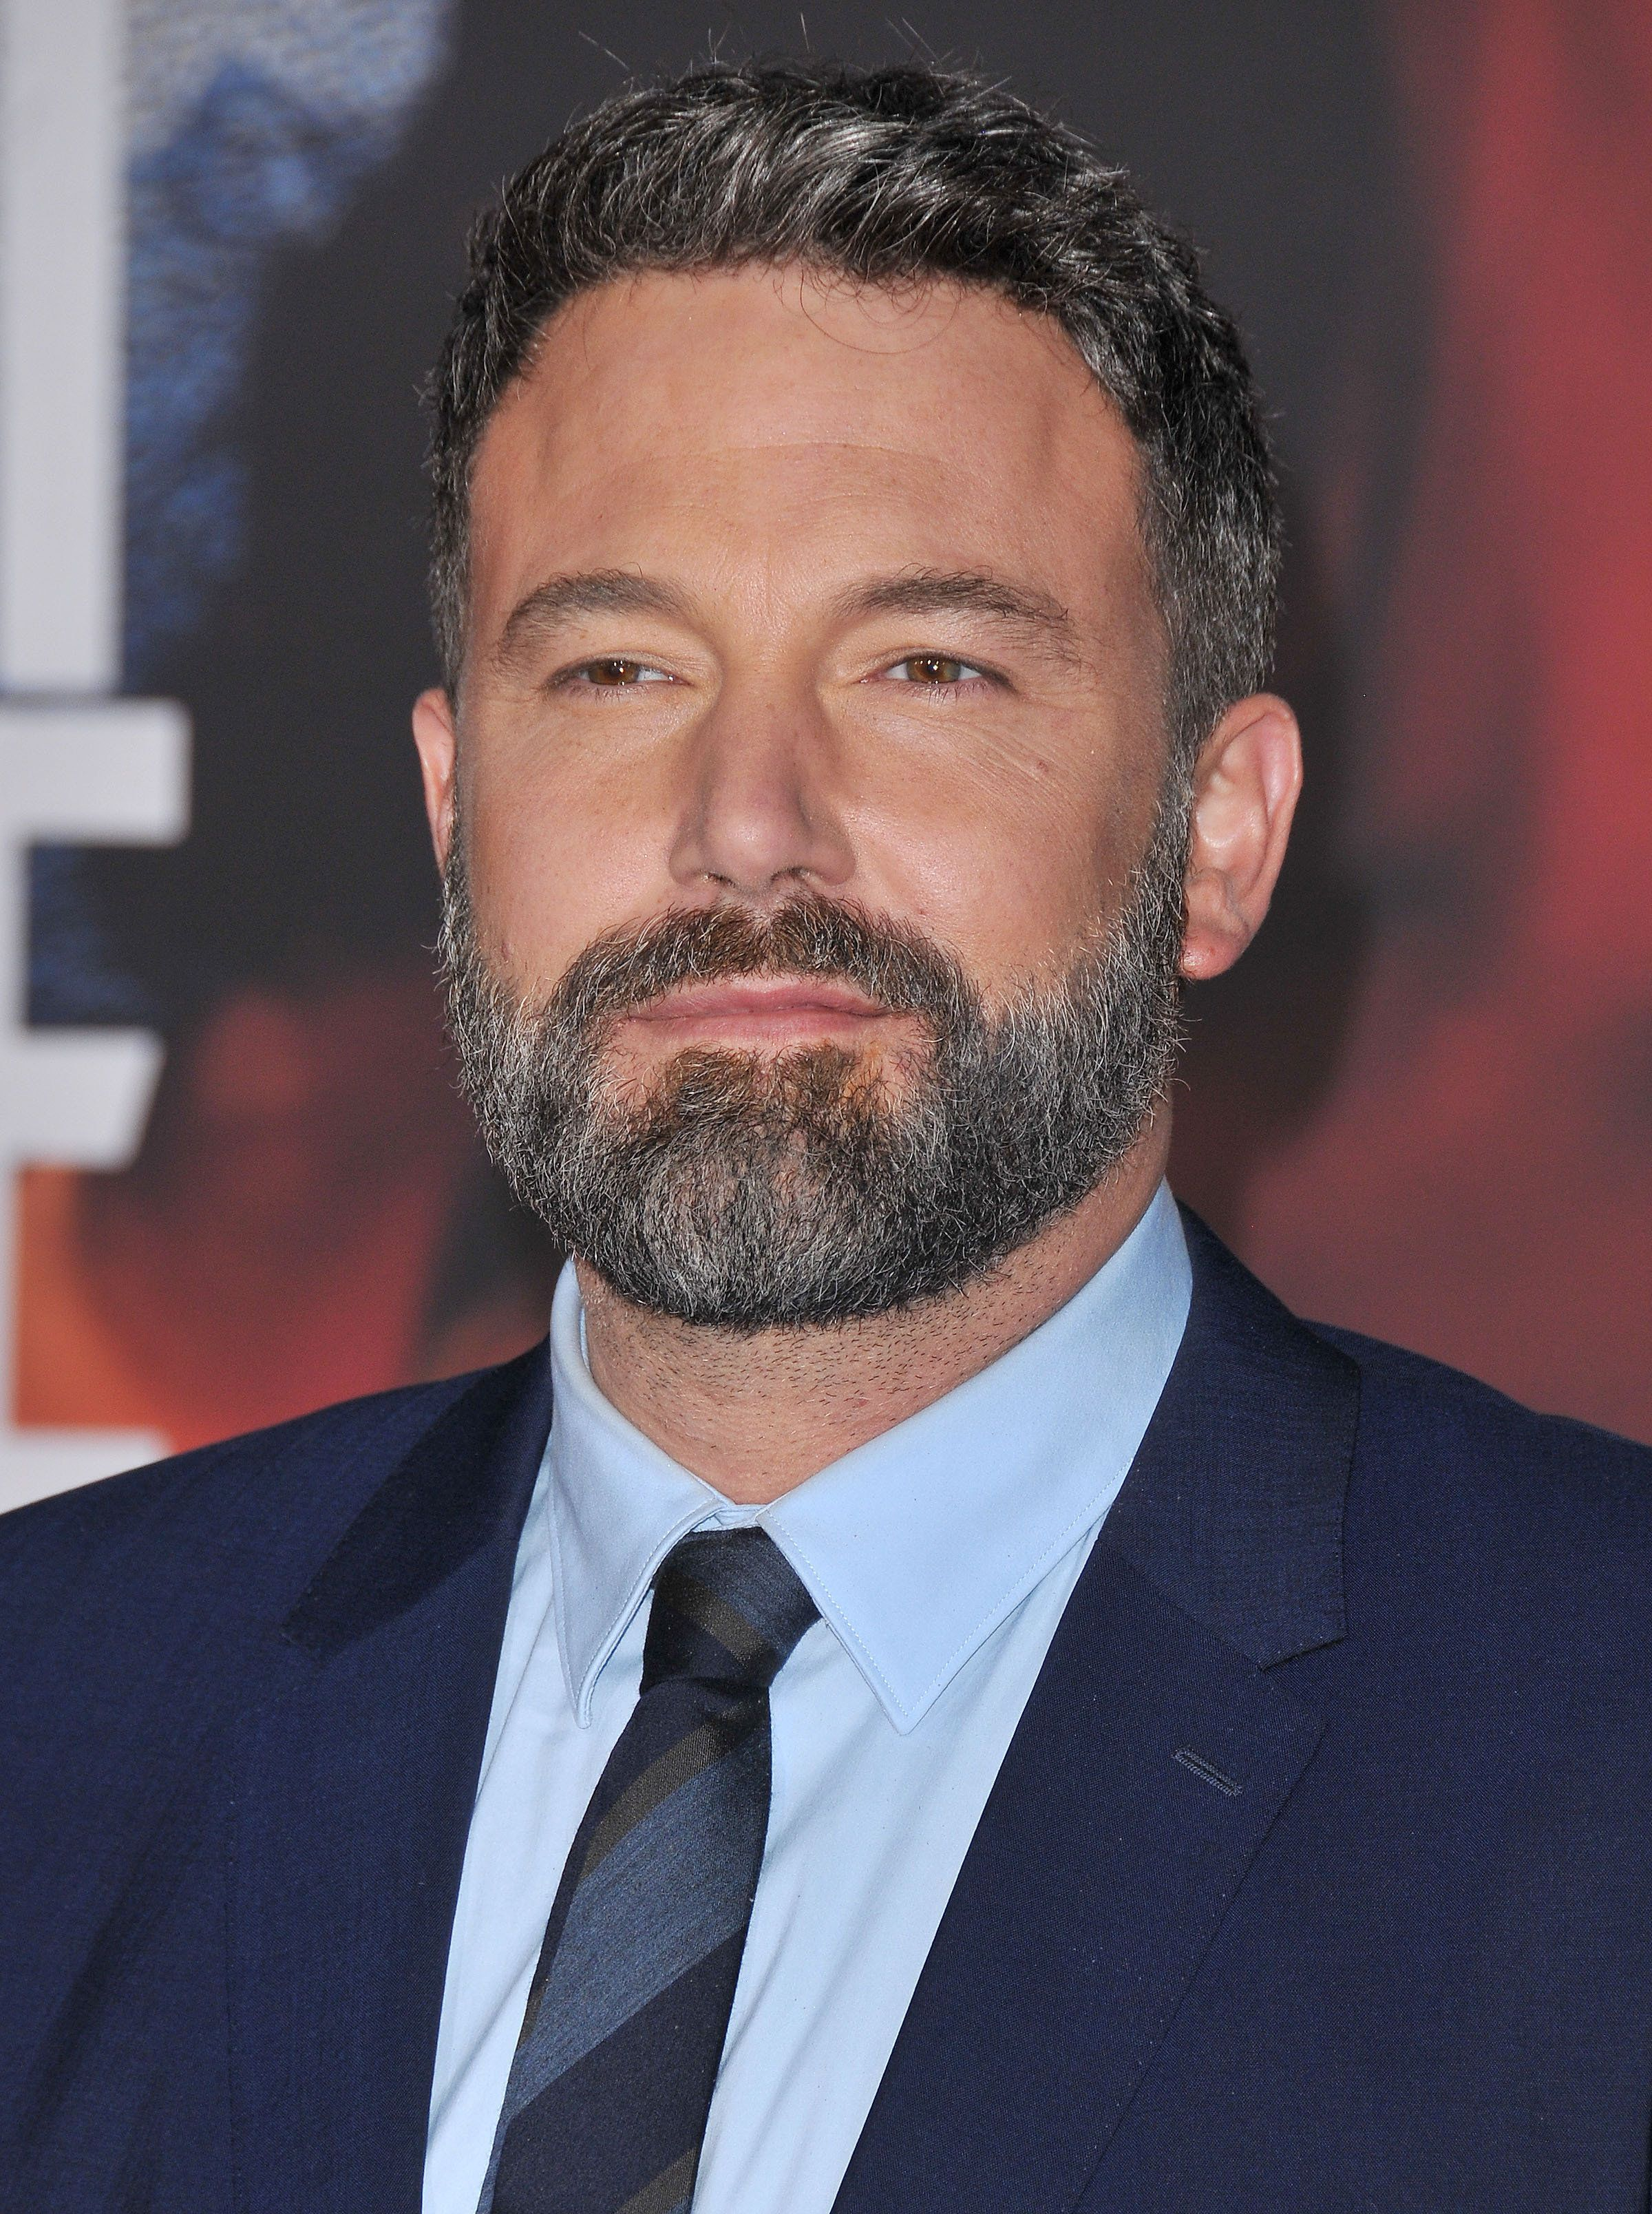 Ben Affleck Confirms He's Completed Rehab Stint For 'Lifelong Struggle' With Alcohol